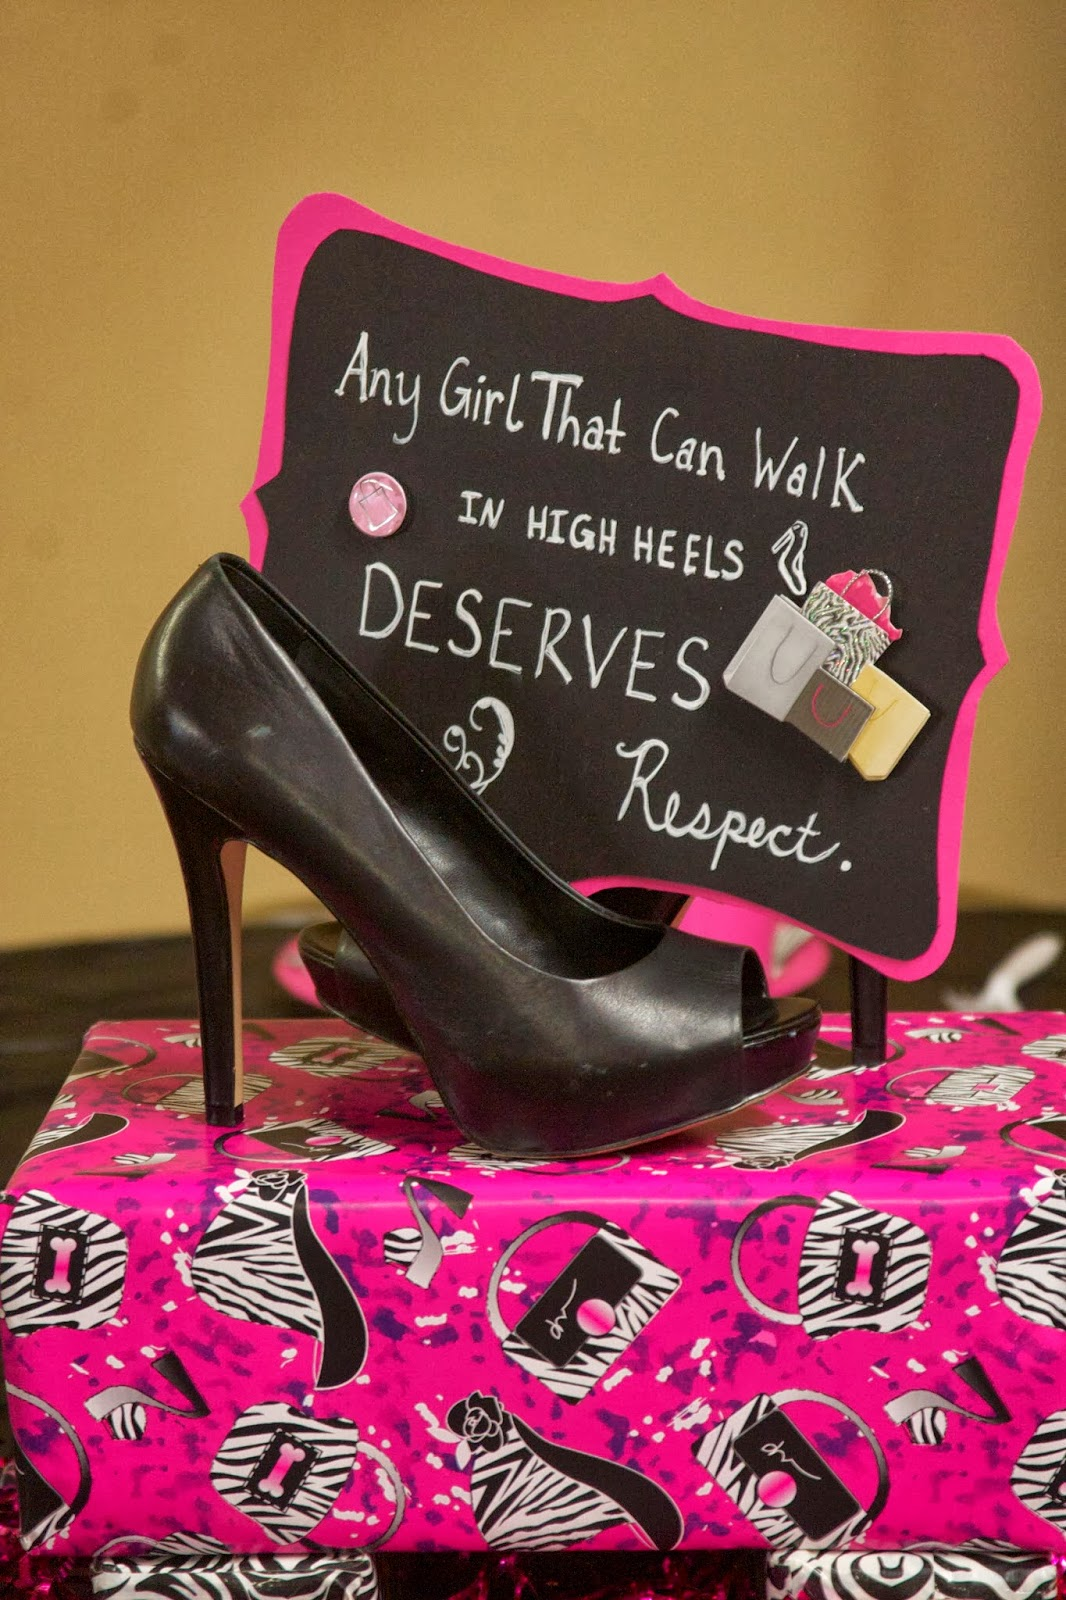 It's a Beautiful Life!: Of High Heels & Surprise Parties